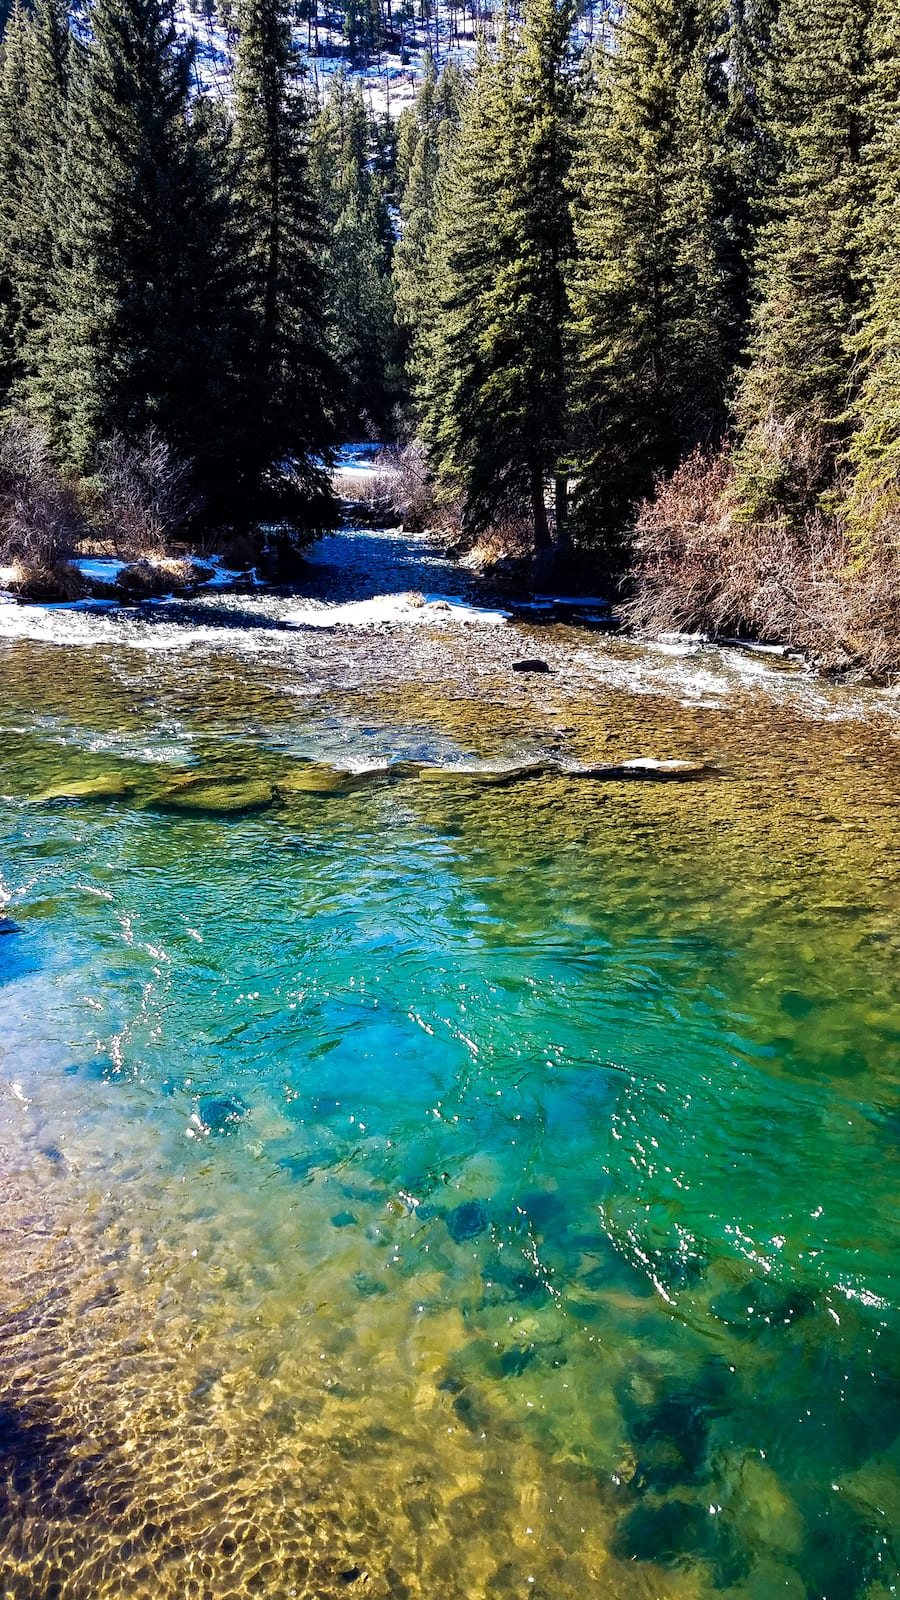 North Fork of the South Platte River, Pine, Colorado